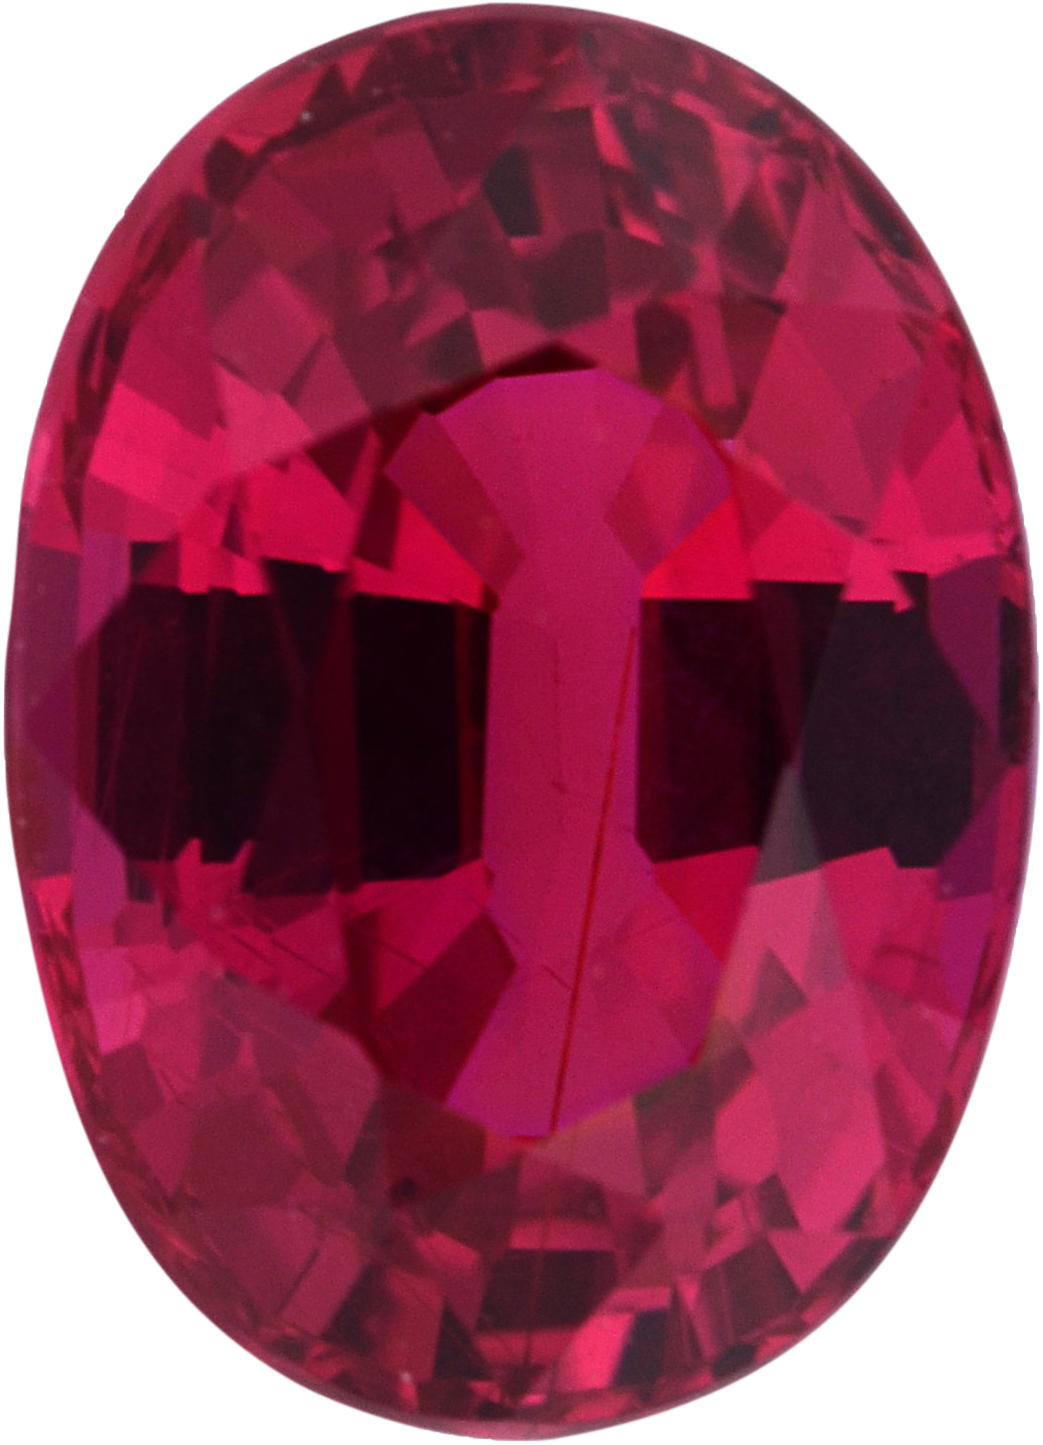 Lovely  No Heat Ruby Loose Gem in Oval Cut,  Purple Red, 7.23 x 5.23  mm, 1.36 Carats